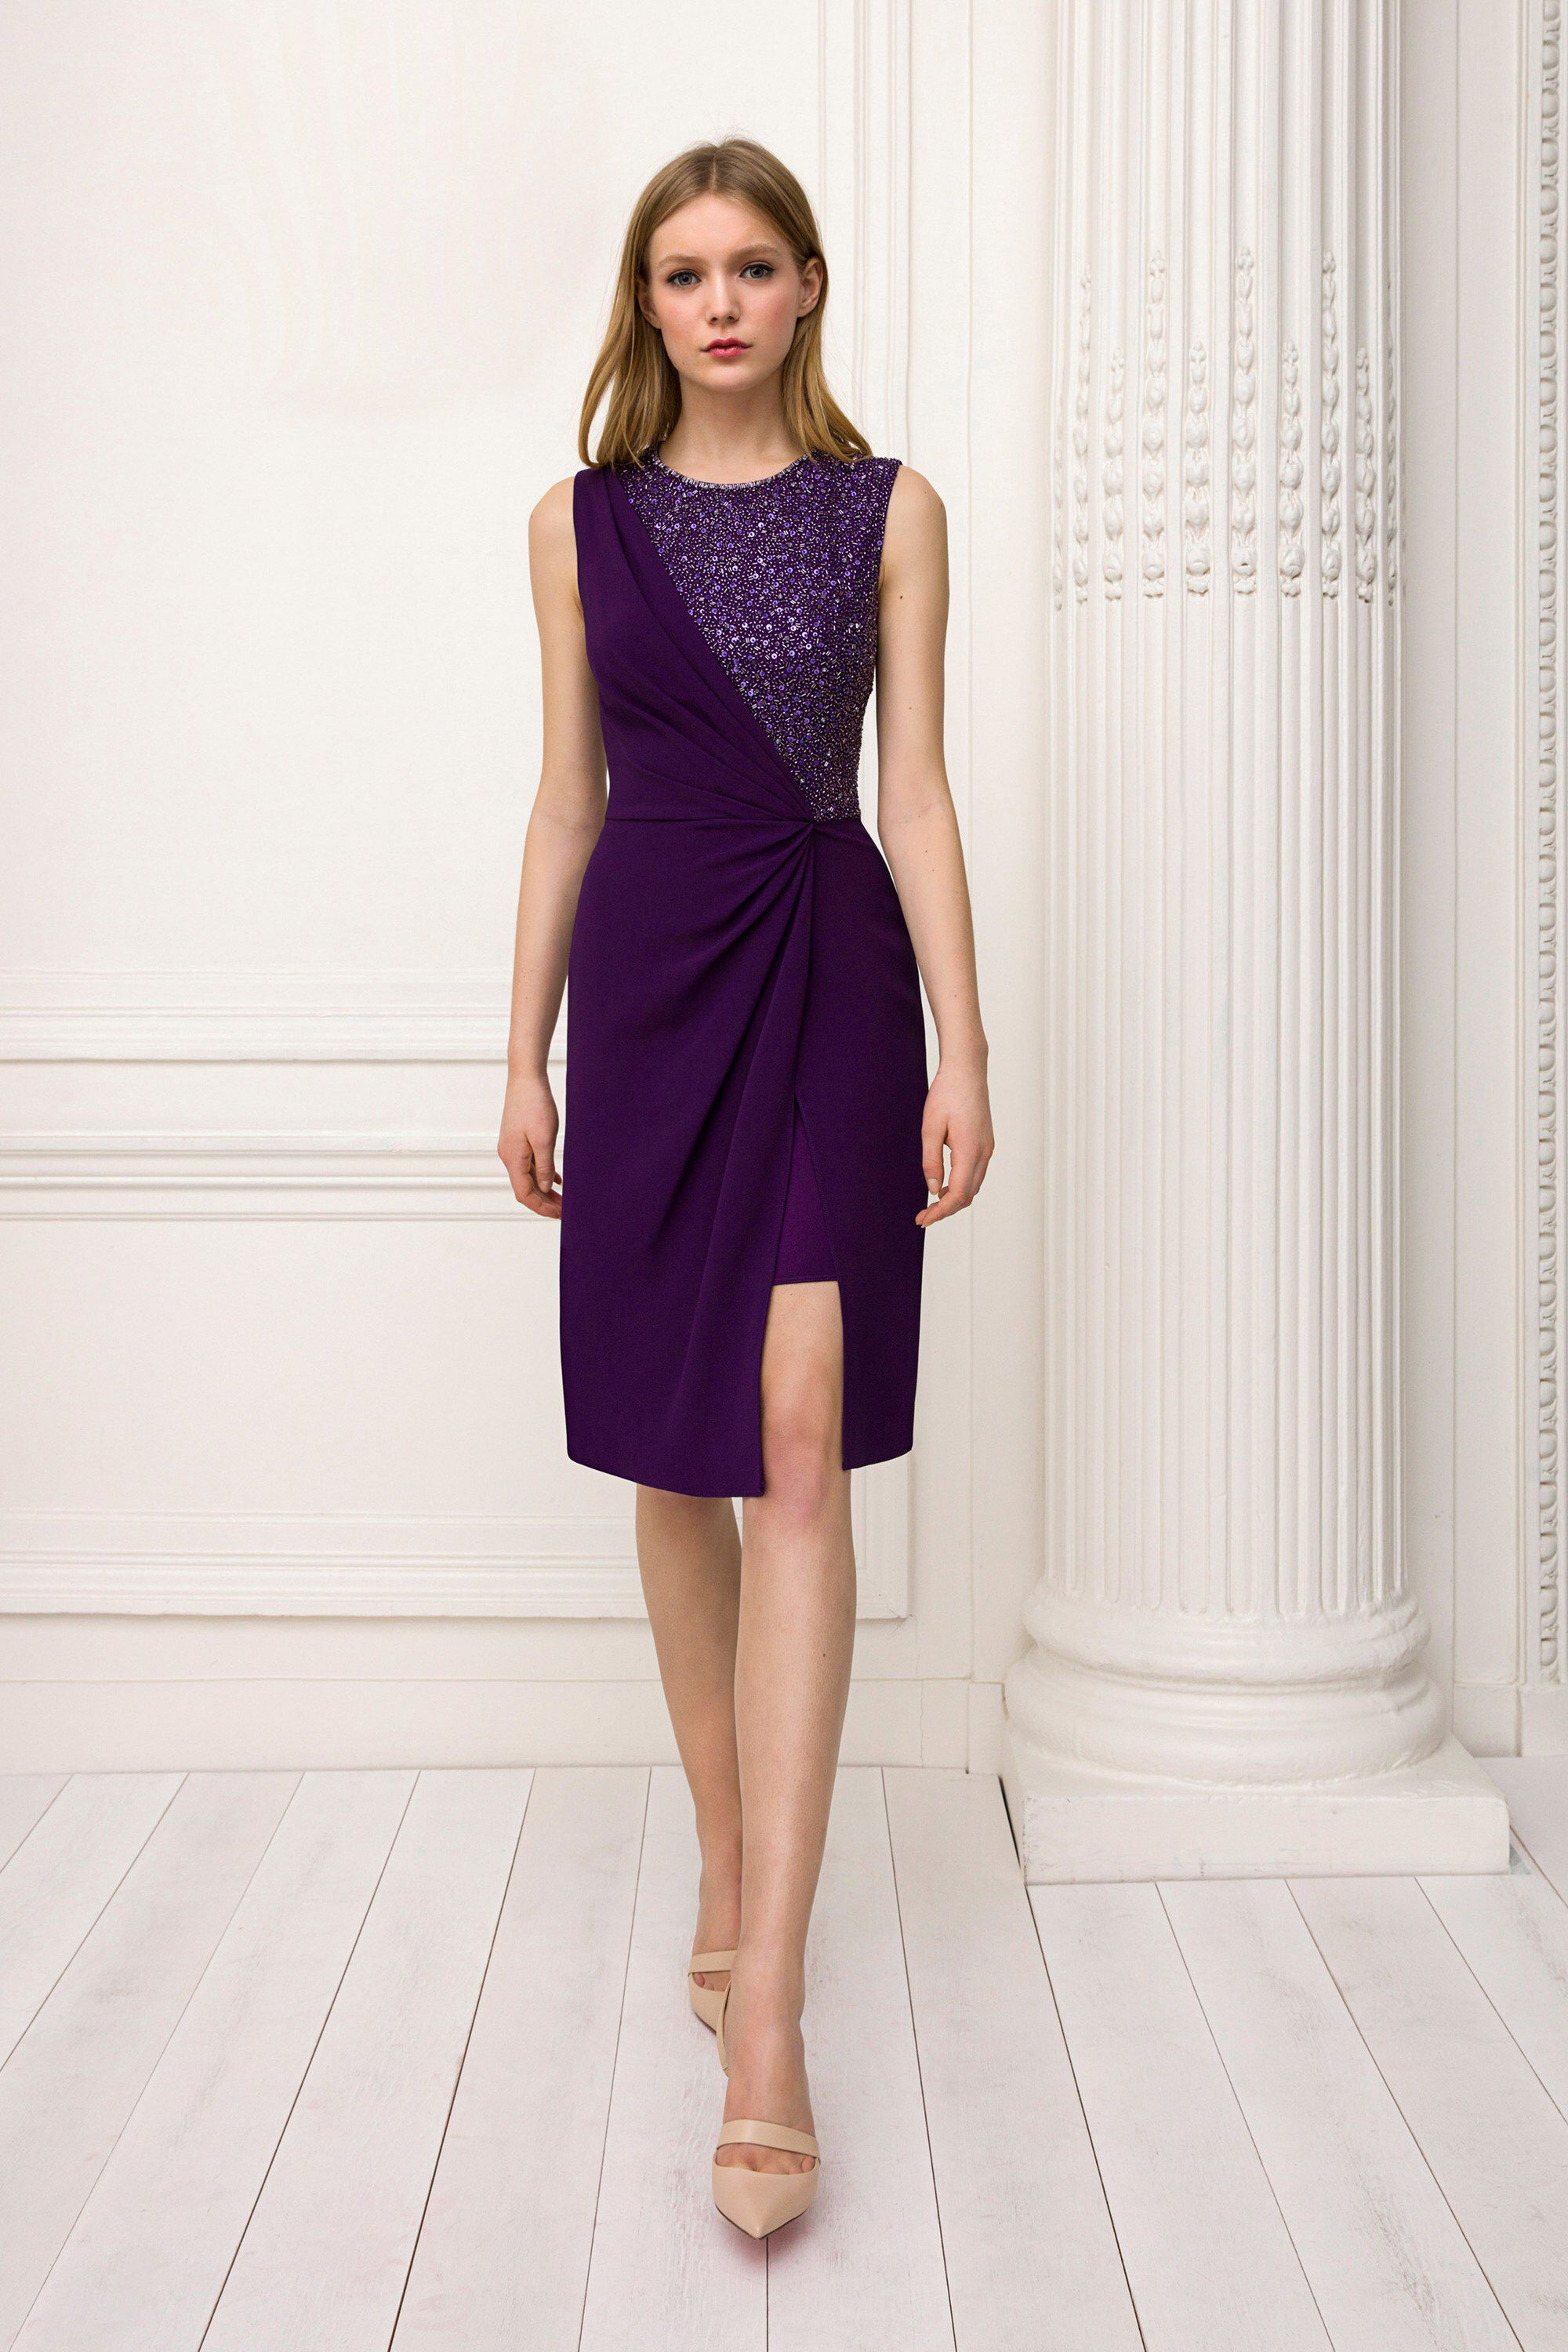 Jenny Packham Pre-Fall 2018 Fashion Show Collection | PRE FALL 2018 ...